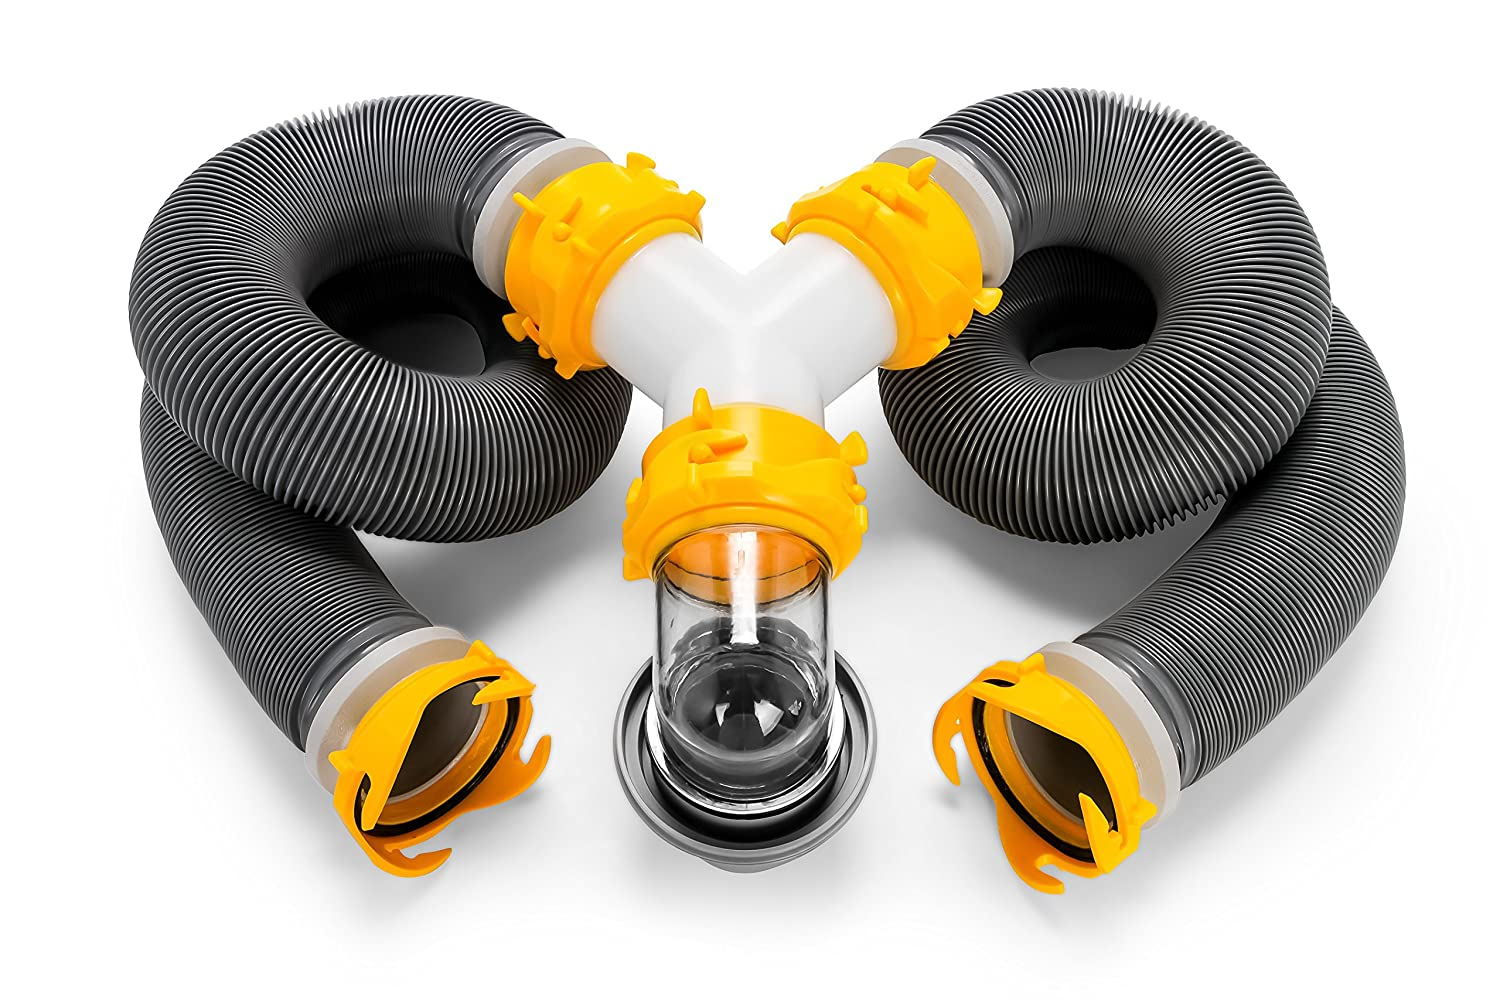 Ready To Use Kit Complete with Sewer Wye and Elbow Fittings Hoses Camco 39666 Deluxe 20 Sewer Hose Kit with Swivel Fittings and Wye Connector and Storage Caps